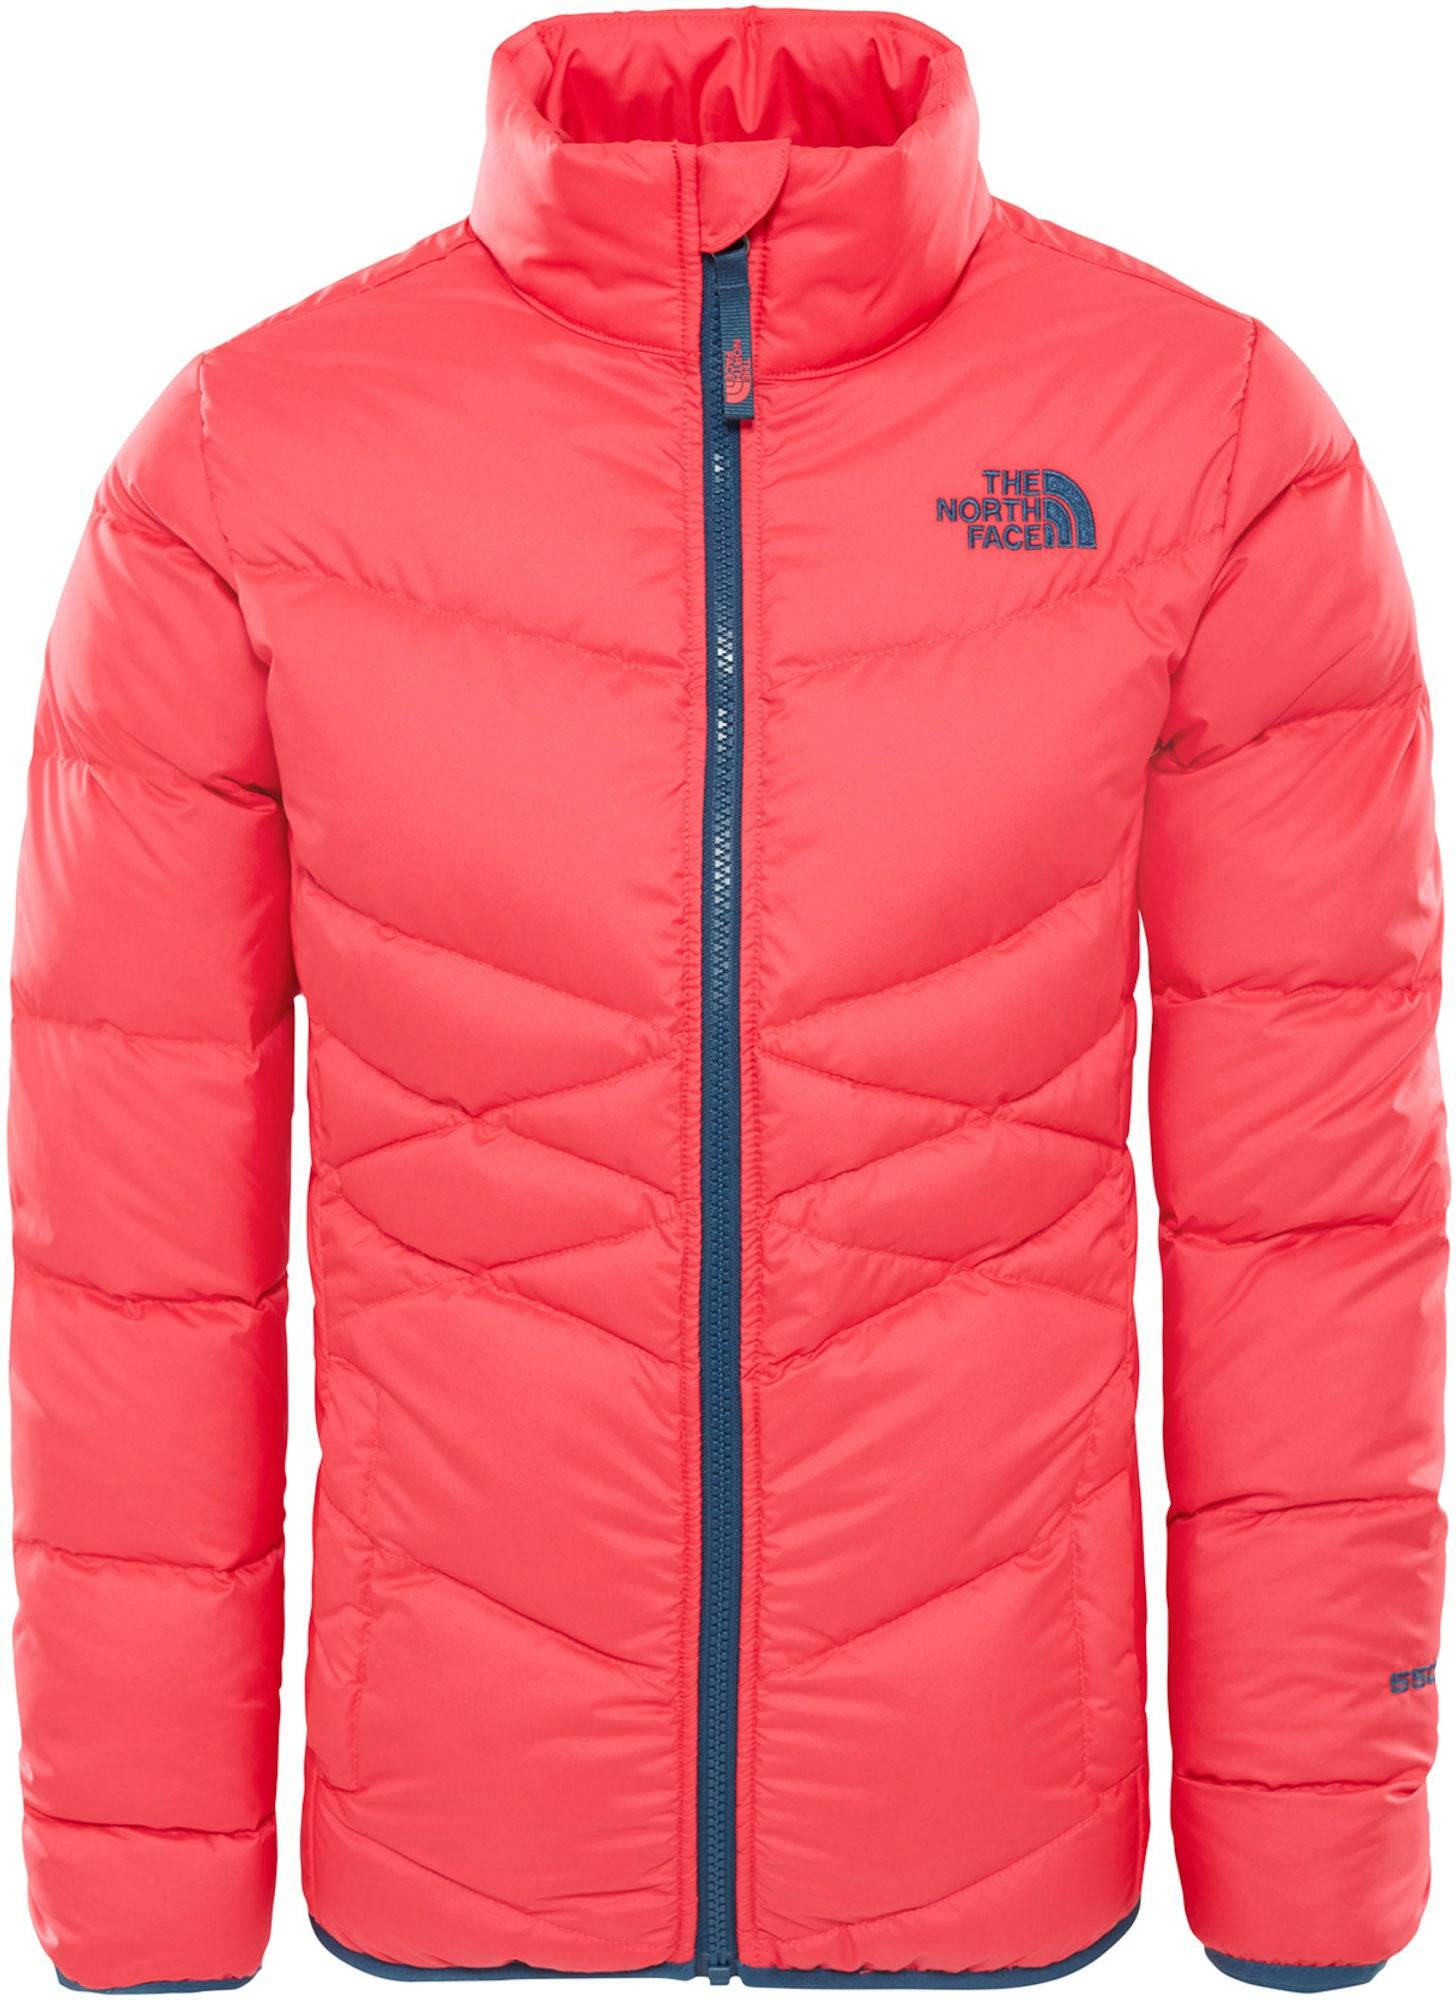 The North Face Andes Down Jacka, Atomic Pink L